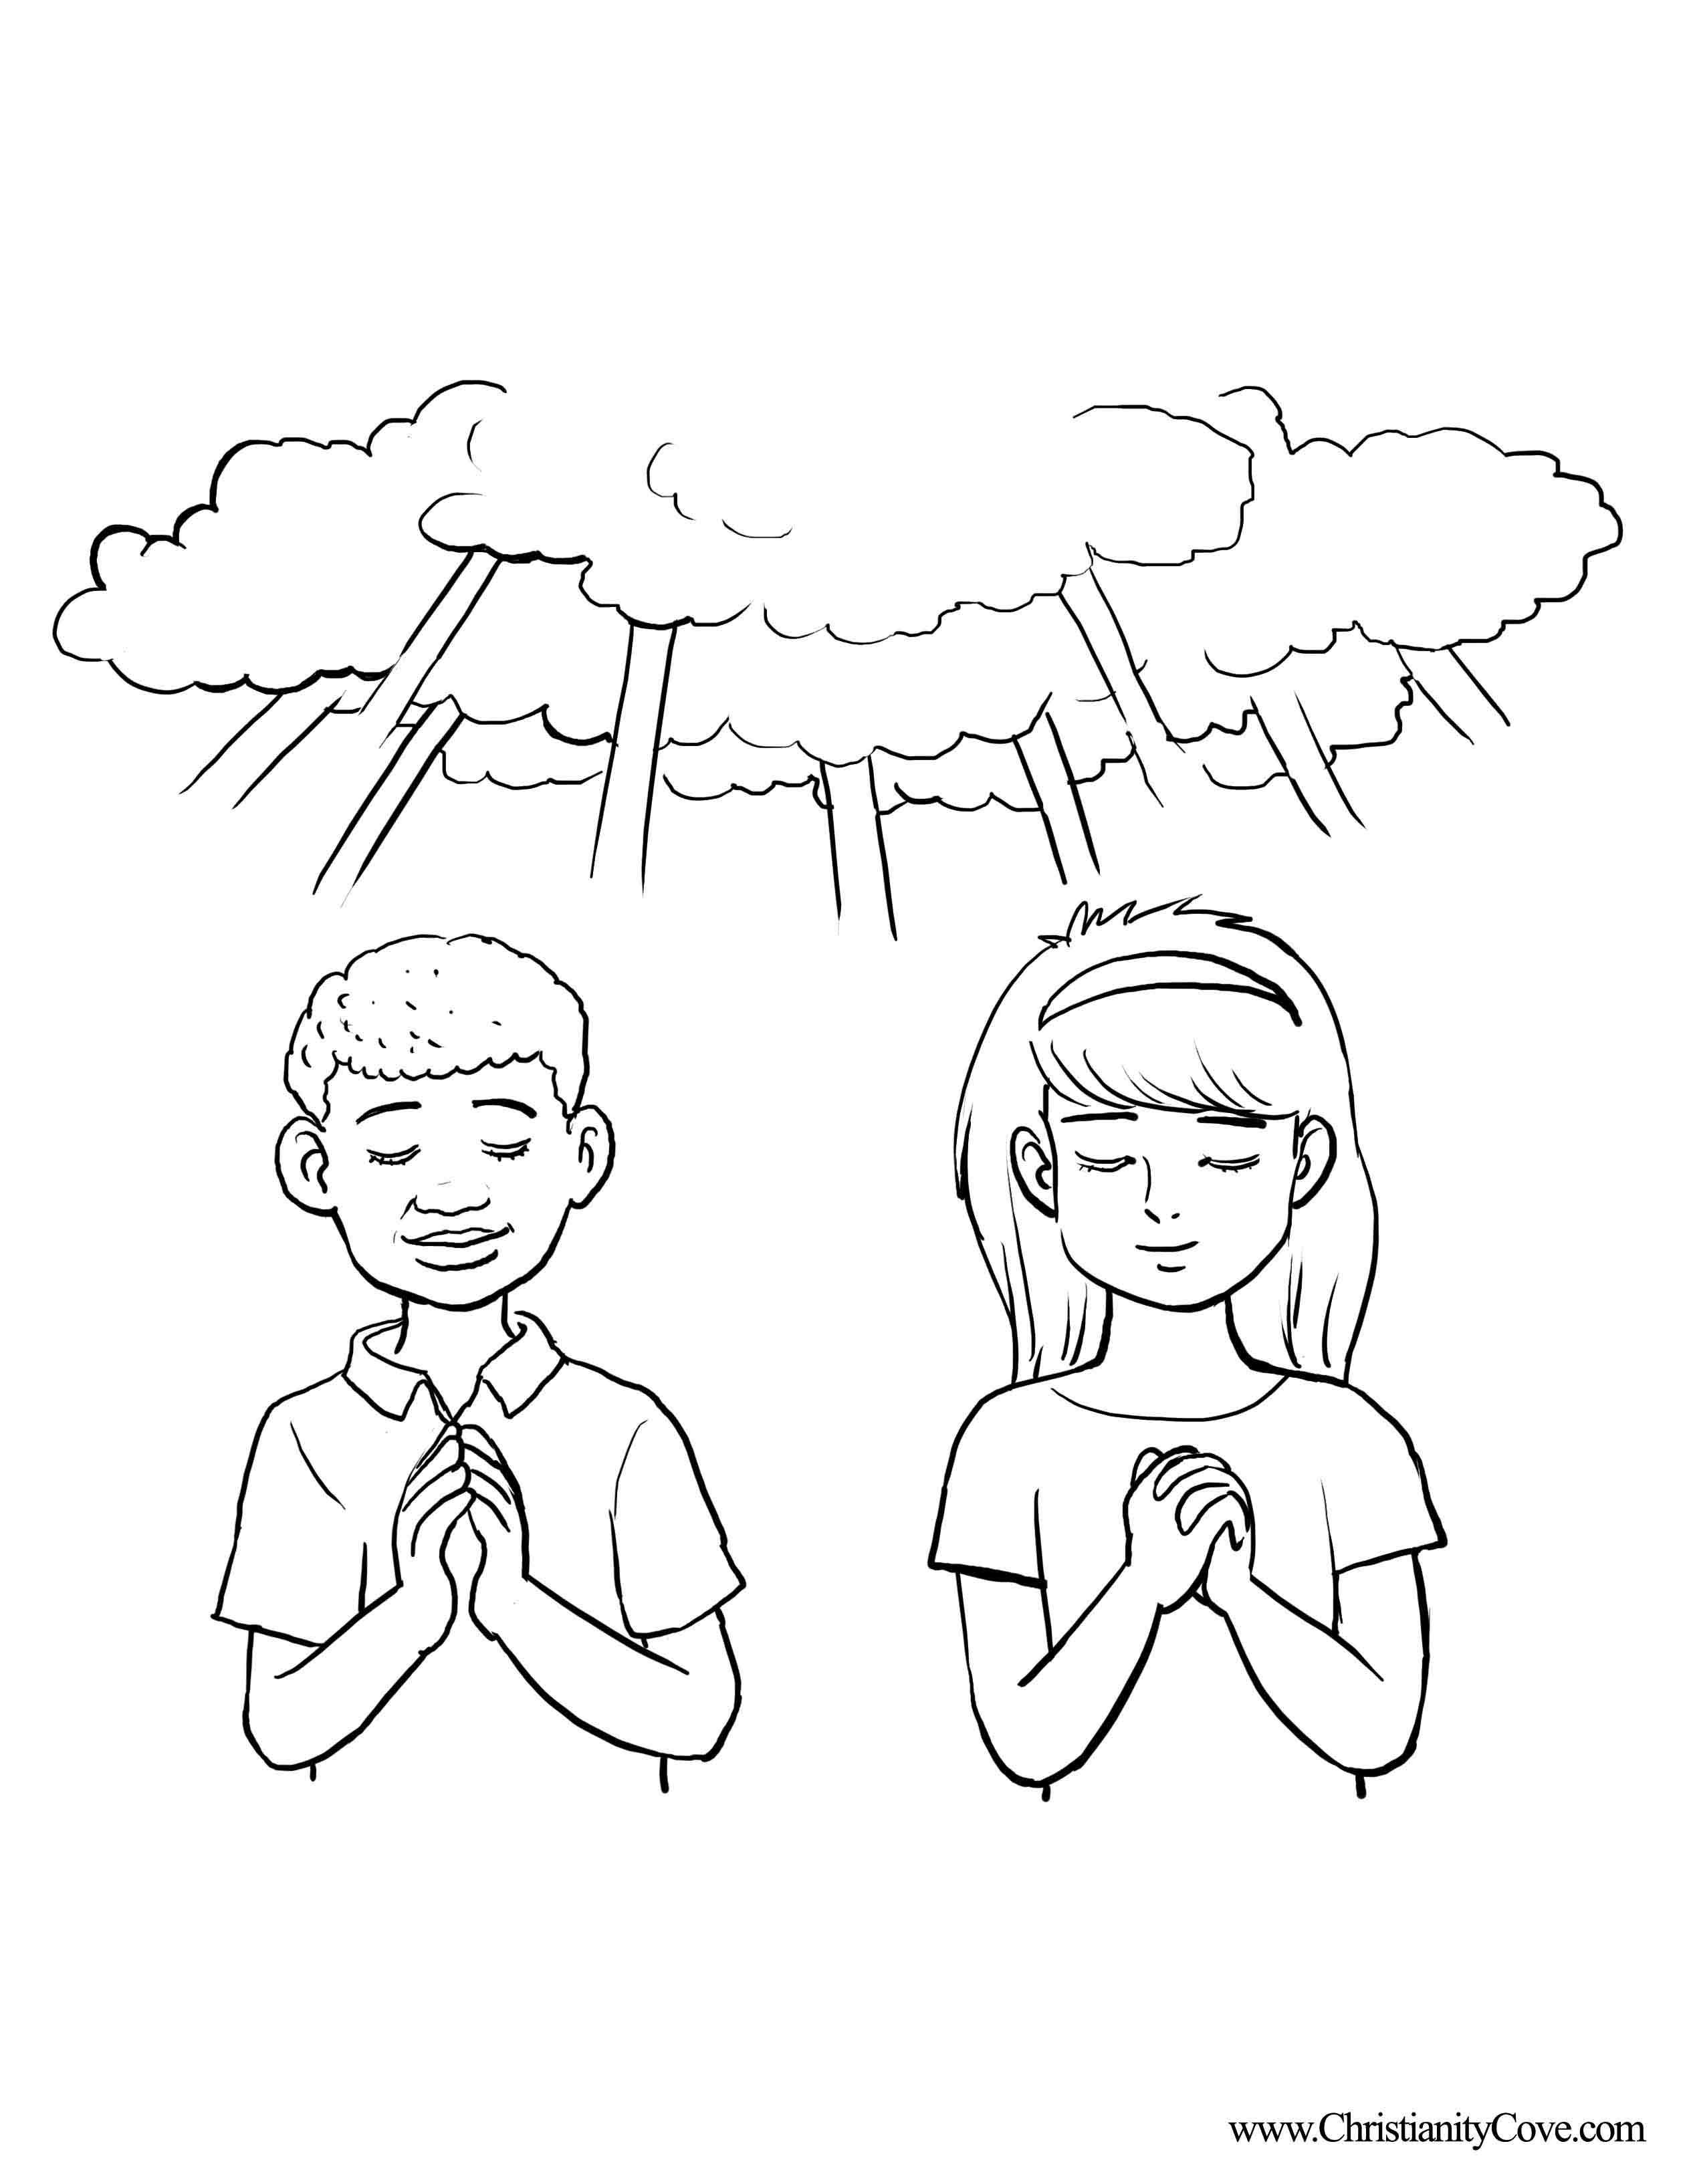 Prayer Coloring Pages Coloring Pages Printables Sunday School